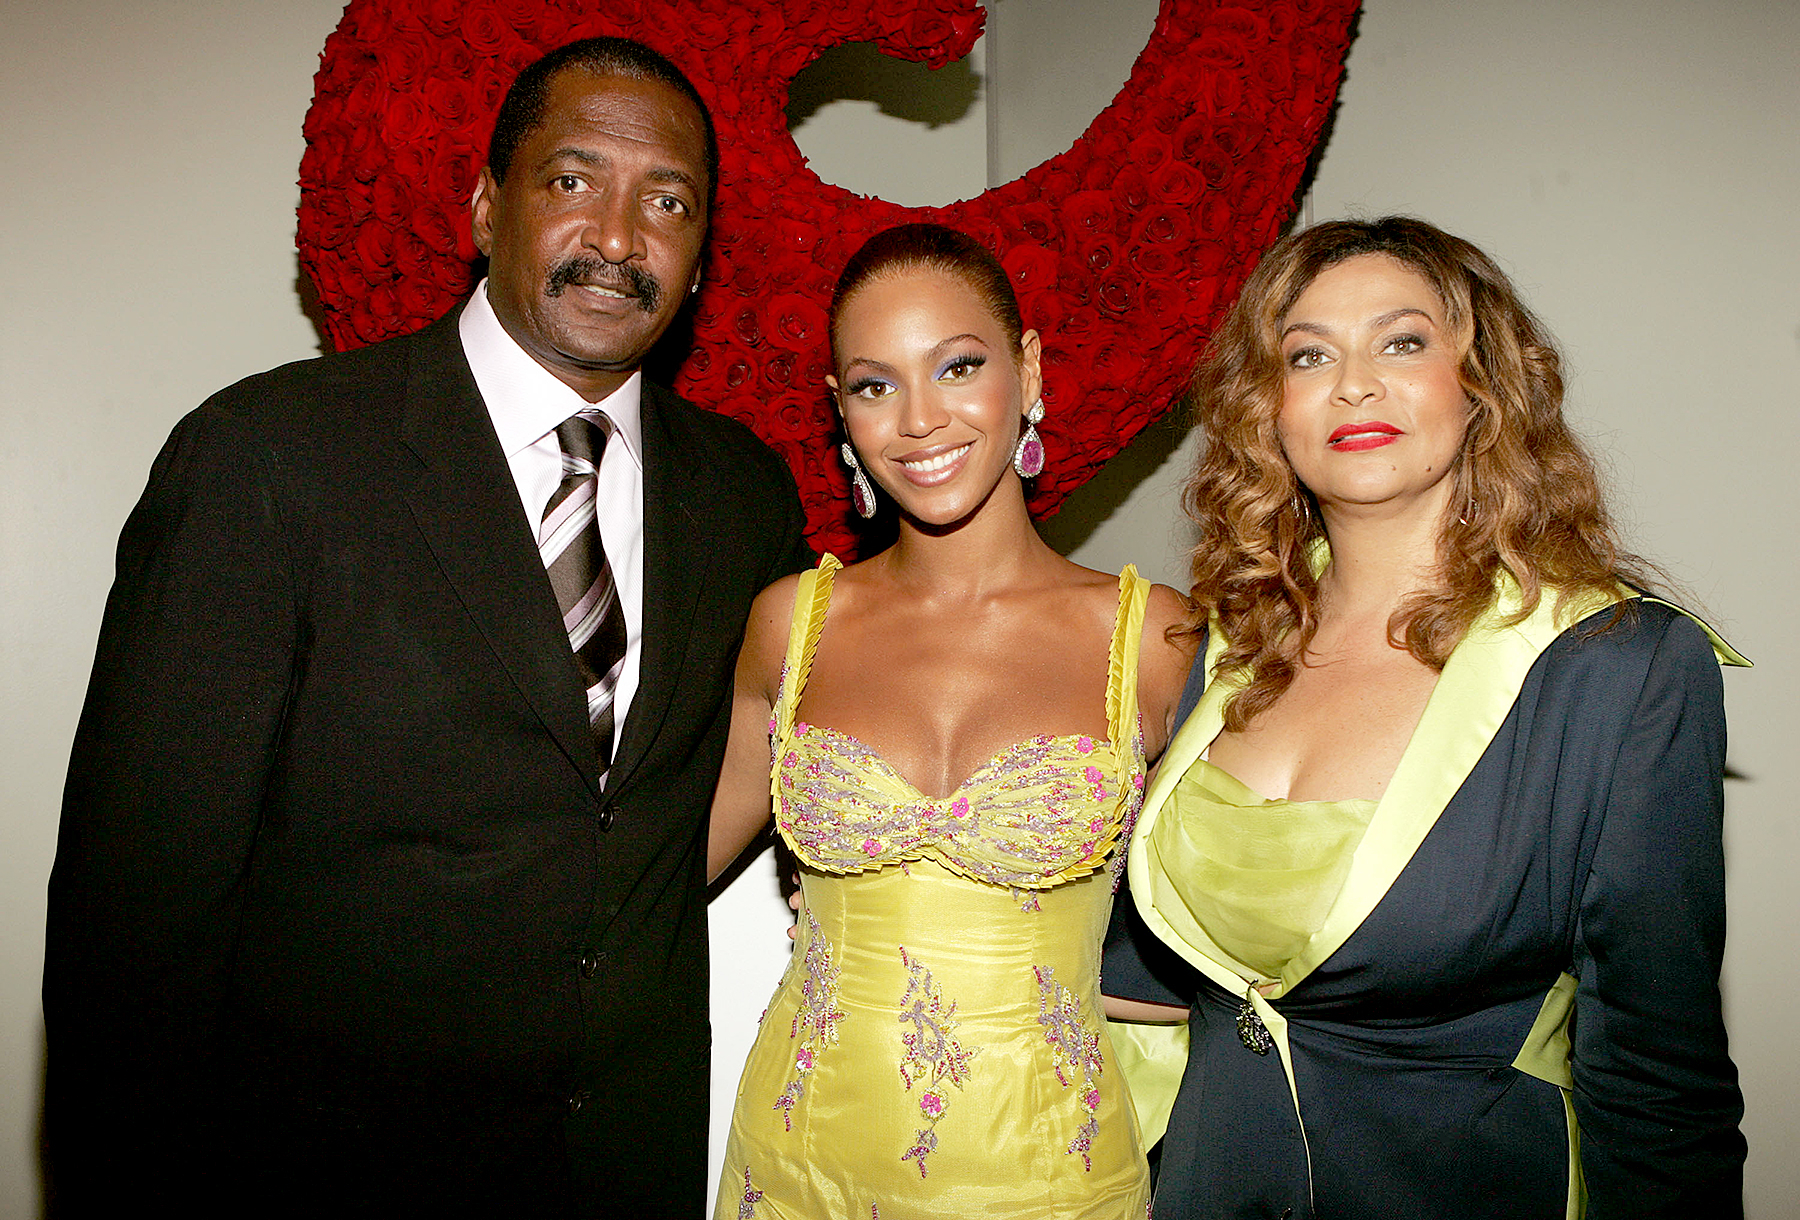 Beyonce Knowles poses with her father, Matthew Knowles, and her mother, Tina Knowles, June 2005 in NYC.